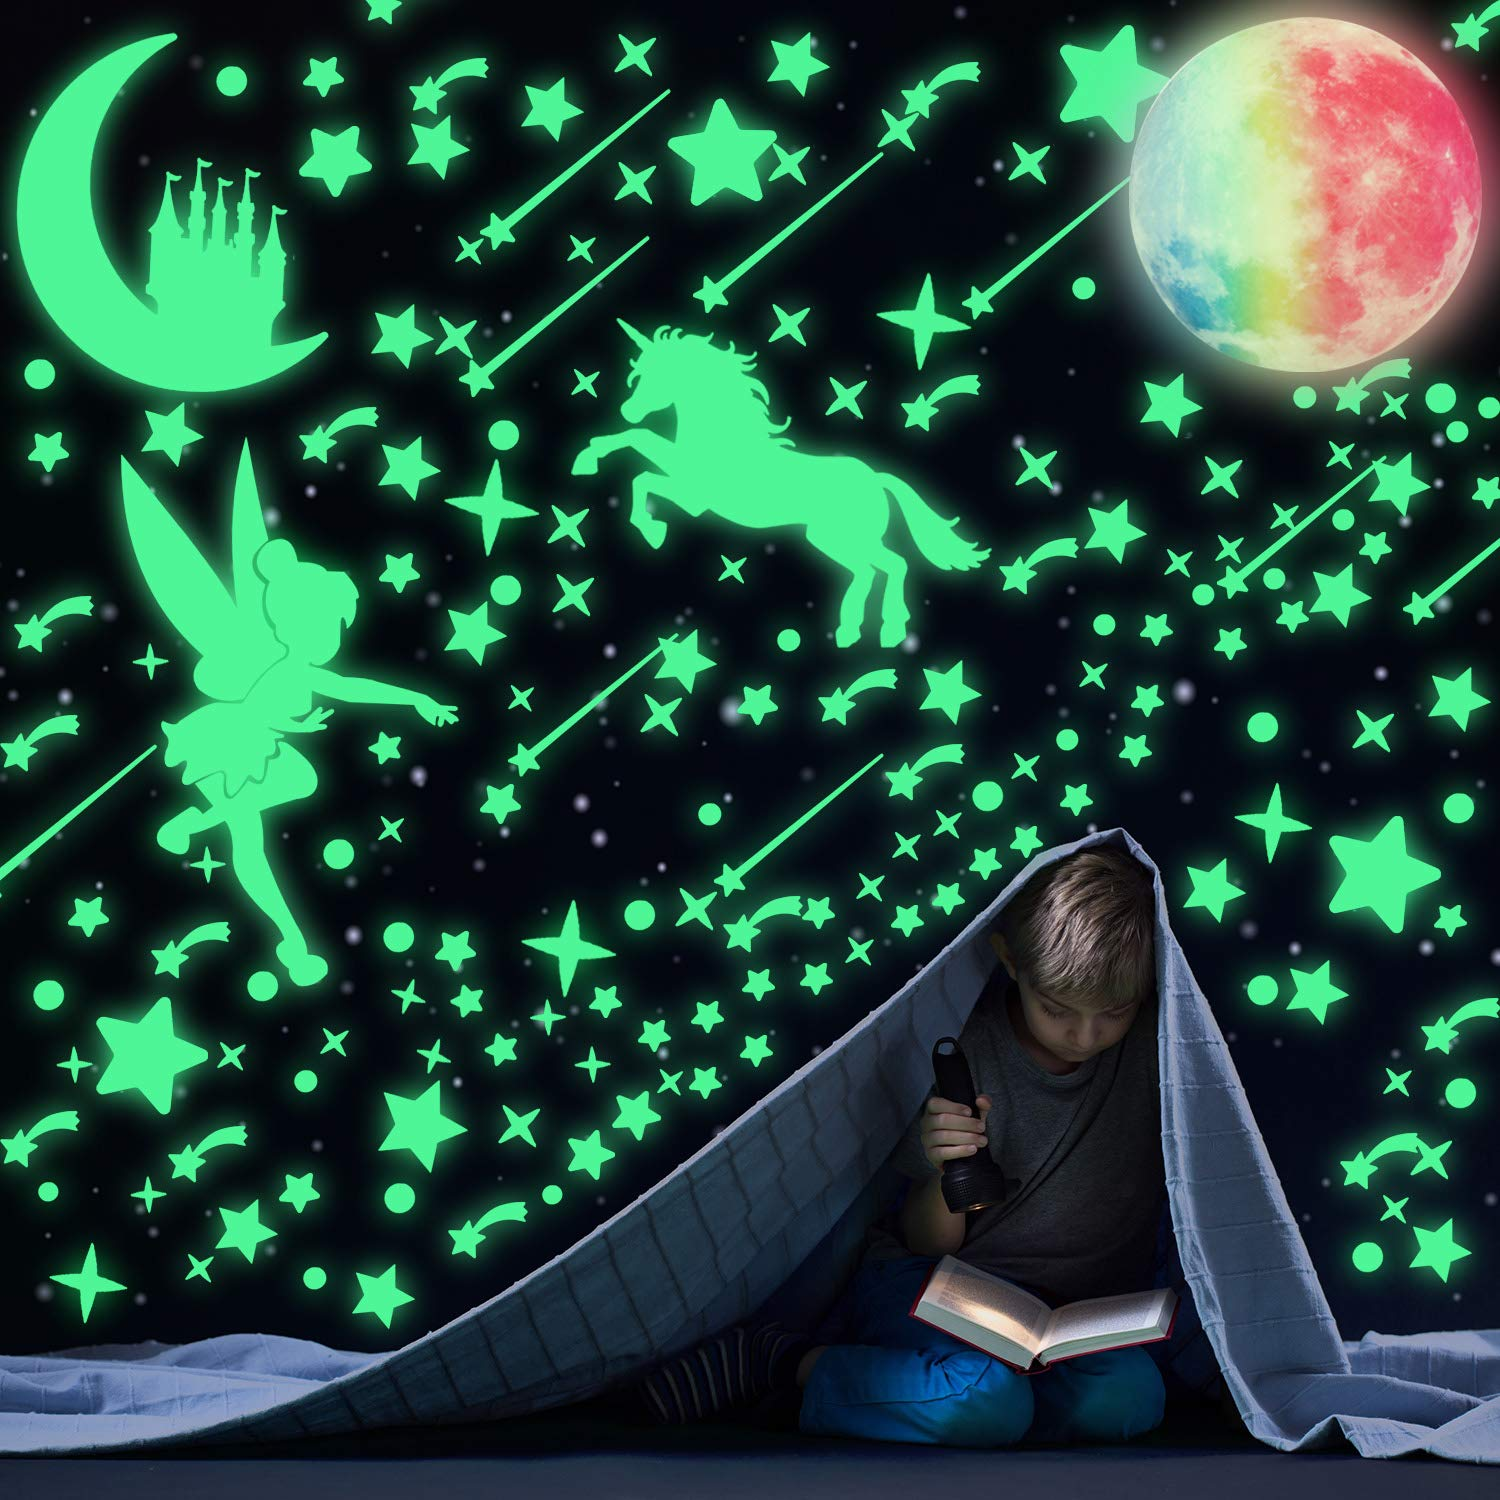 321 Pieces Luminous Dots Stars Stickers Fairytale Glowing Unicorn Ceiling Decal Set and 1 Piece Glowing Colorful Moon Fluorescent Moon Castle Wall Decor Sticker for Kids Nursery Bedroom DIY